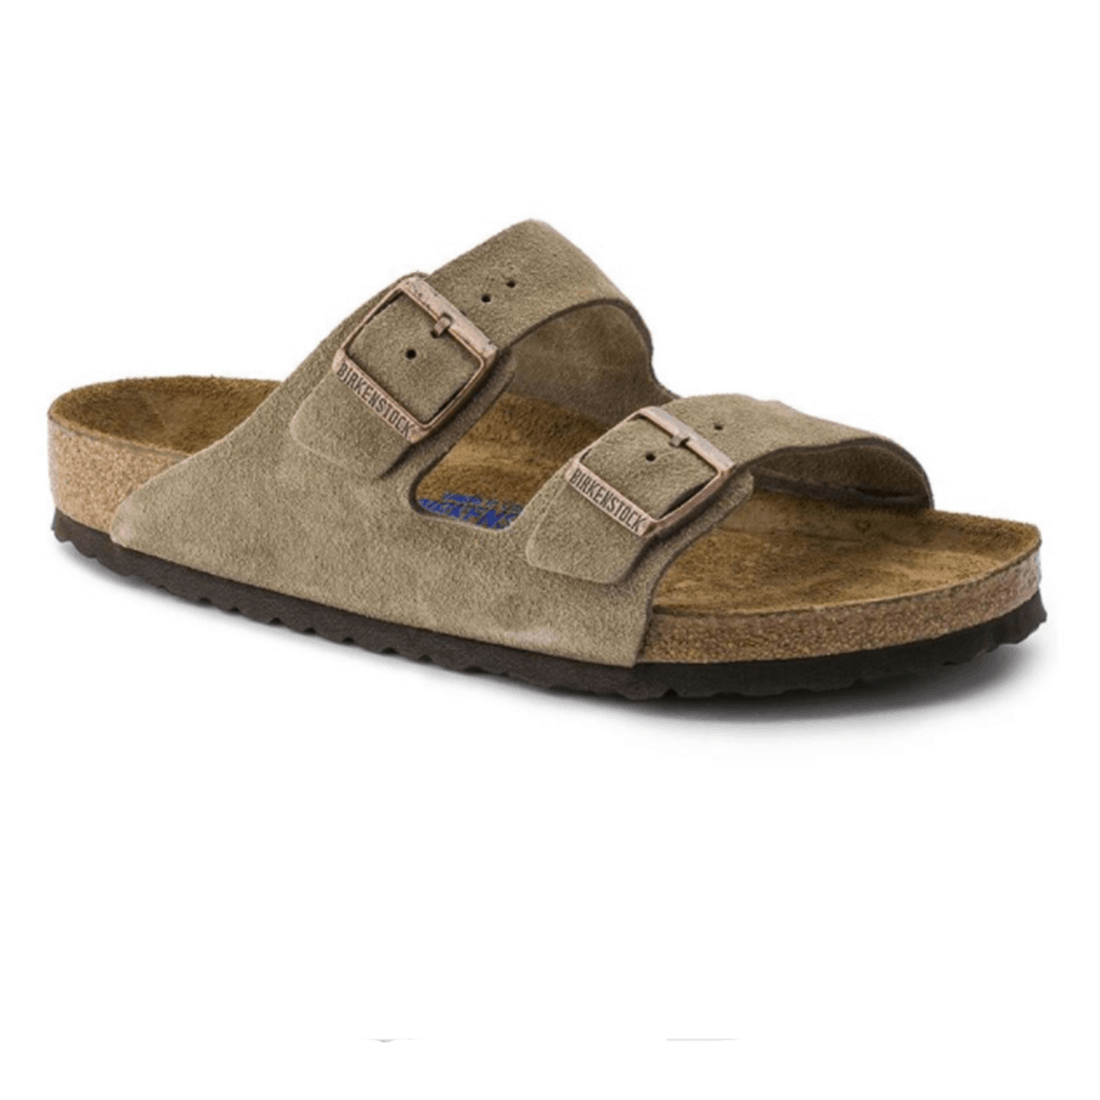 Birkenstock Arizona Soft Foot Bed In Taupe Suede 63501